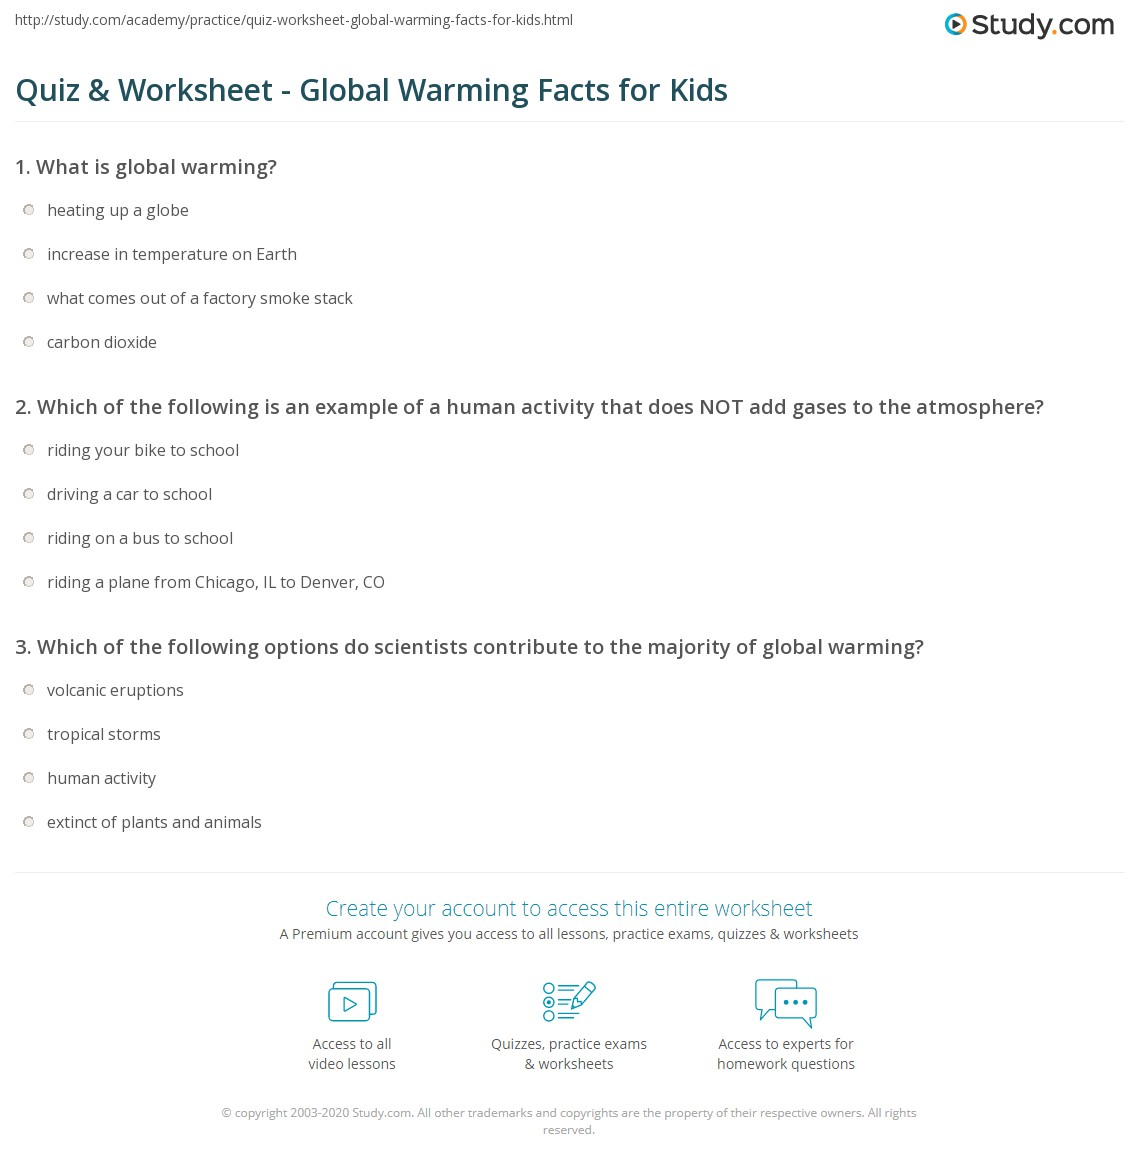 Quiz & Worksheet - Global Warming Facts For Kids